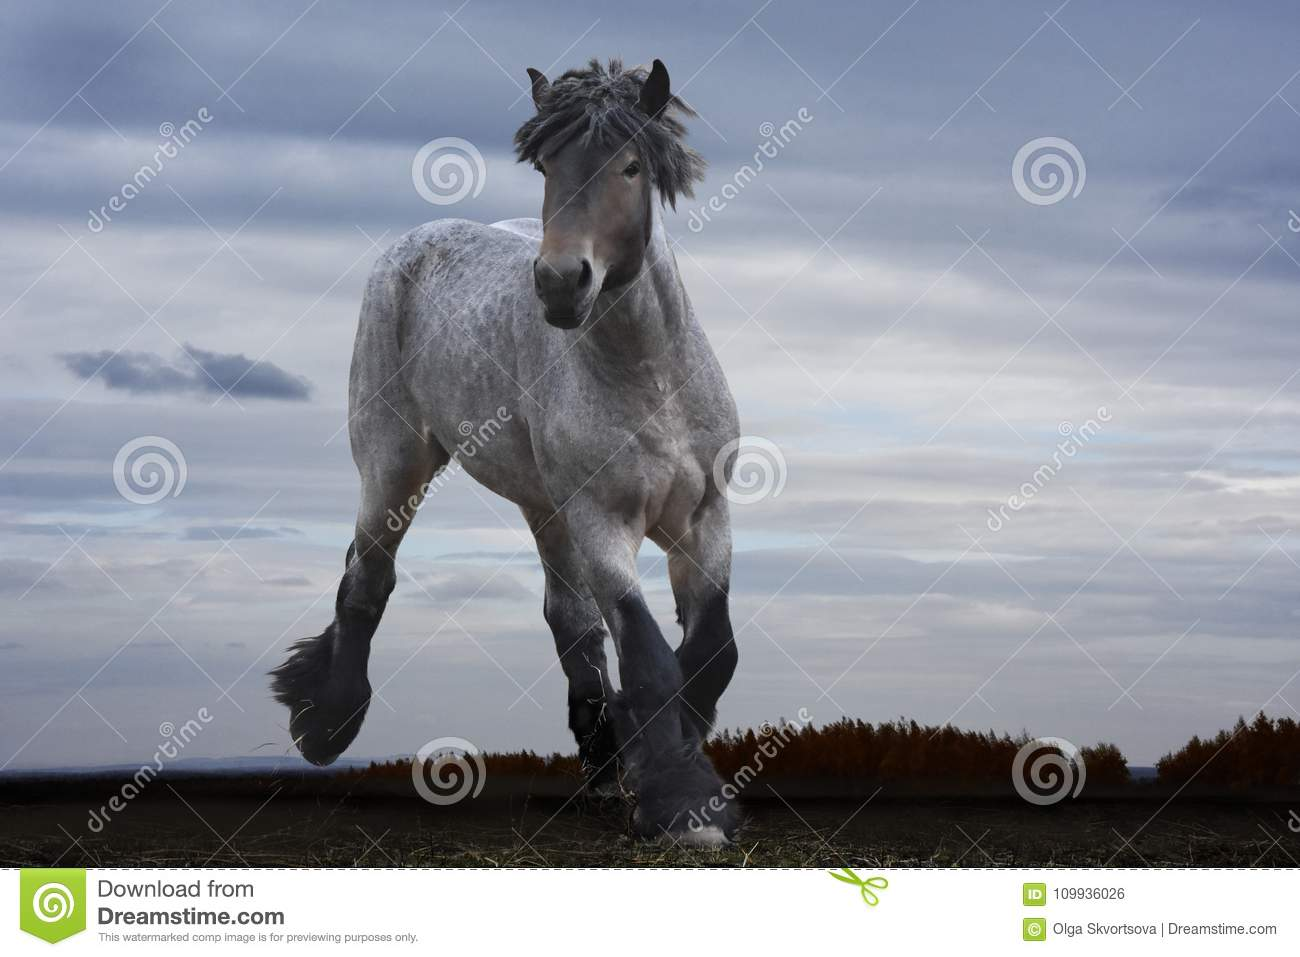 Powerful Strong Horse Breeds Russian Heavy Duty Stock Photo Image Of Horizontal Field 109936026